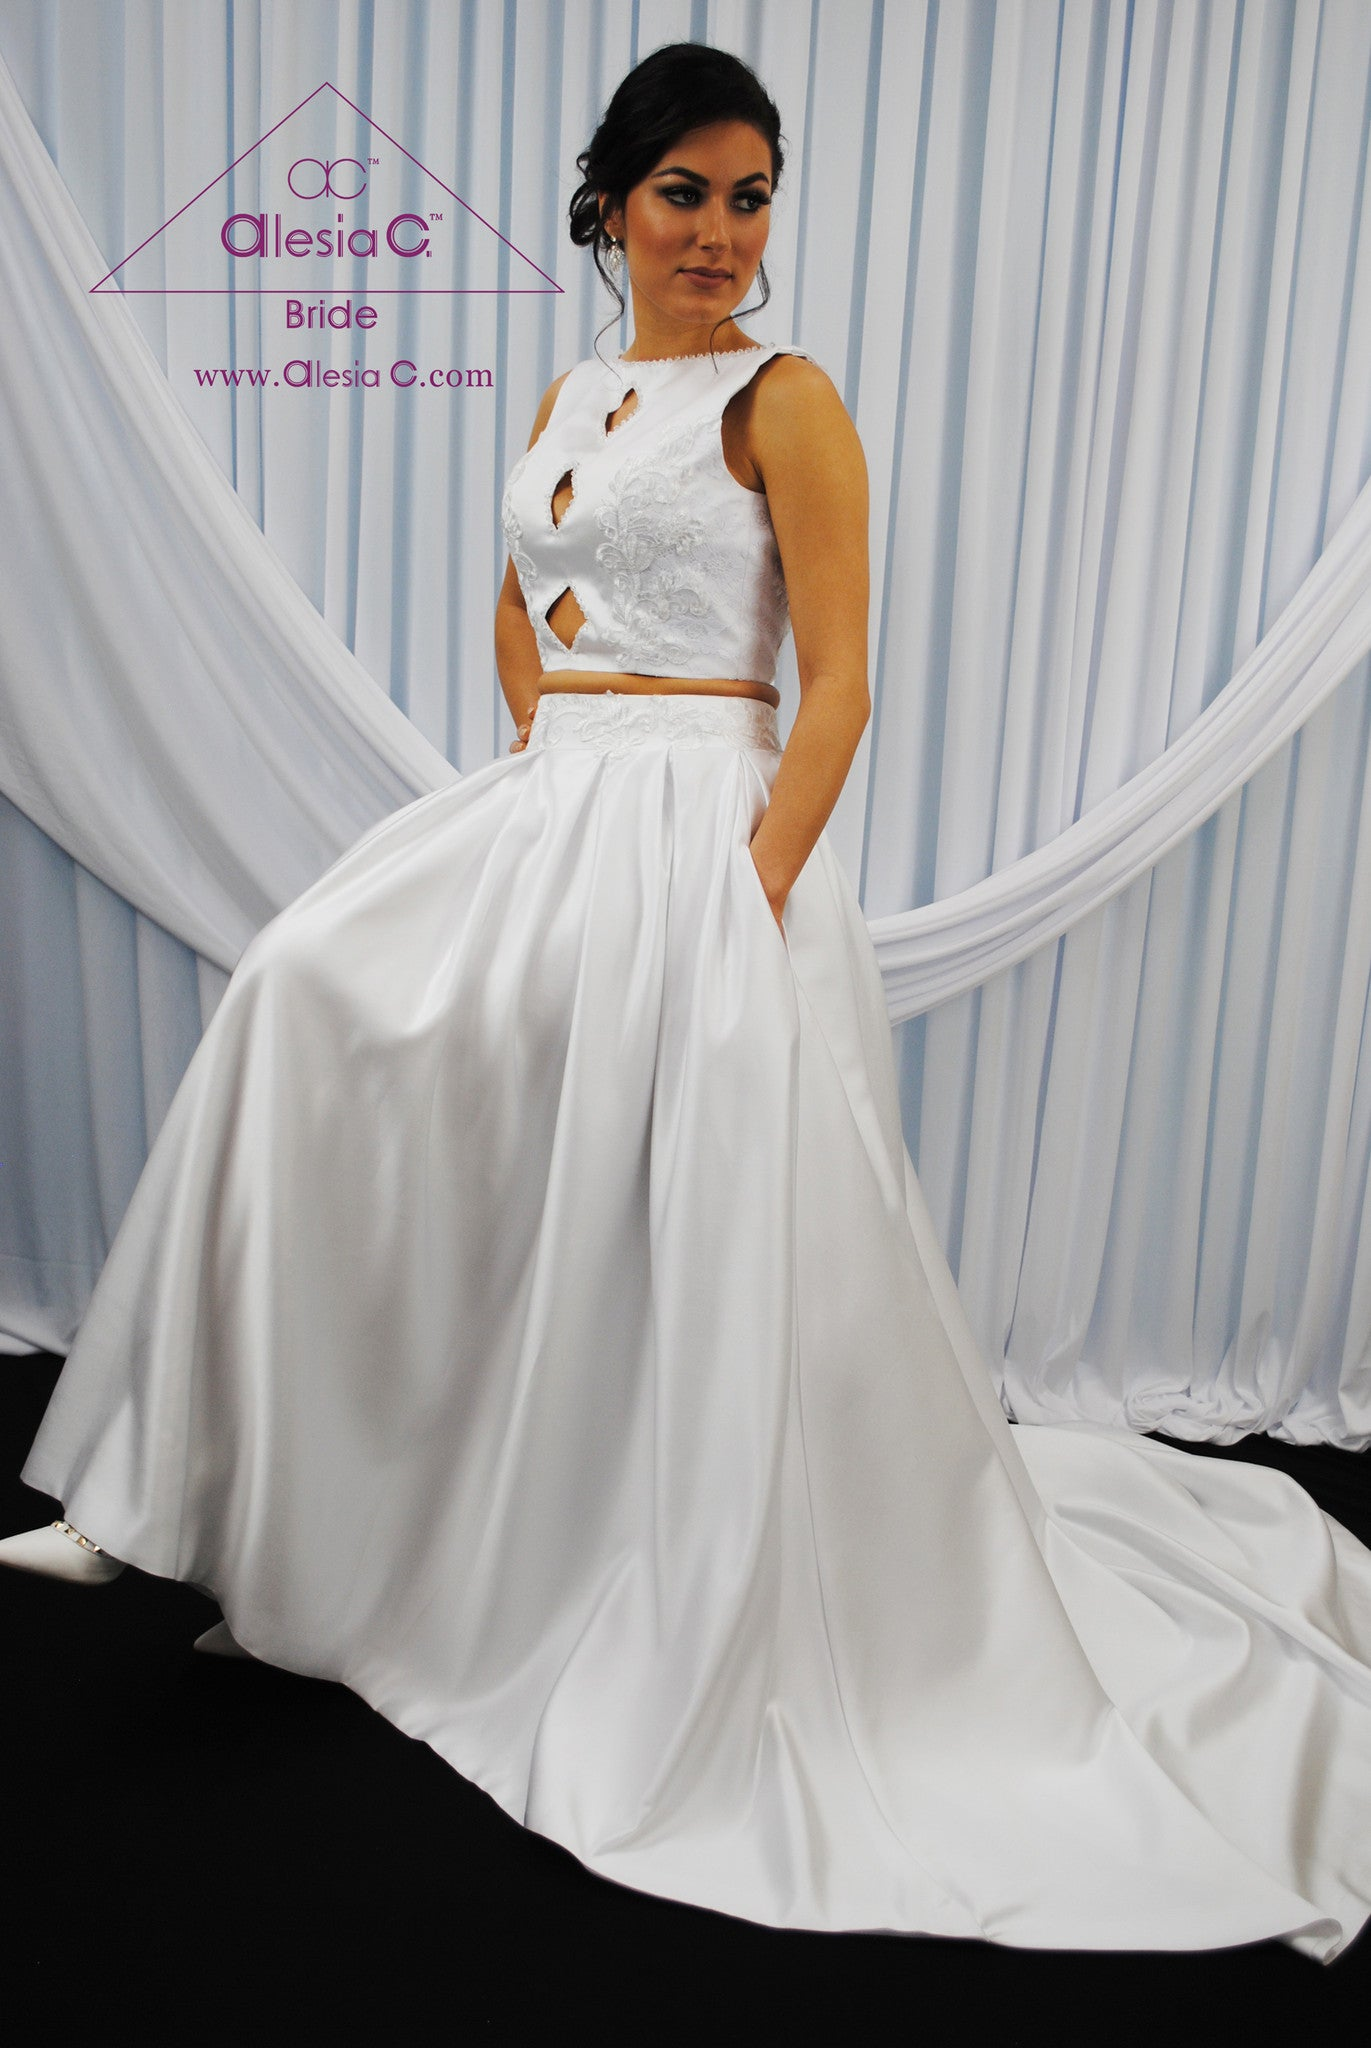 MODERNA 2 Pieces Bridal Separates Satin Couture Wedding Dress by ...